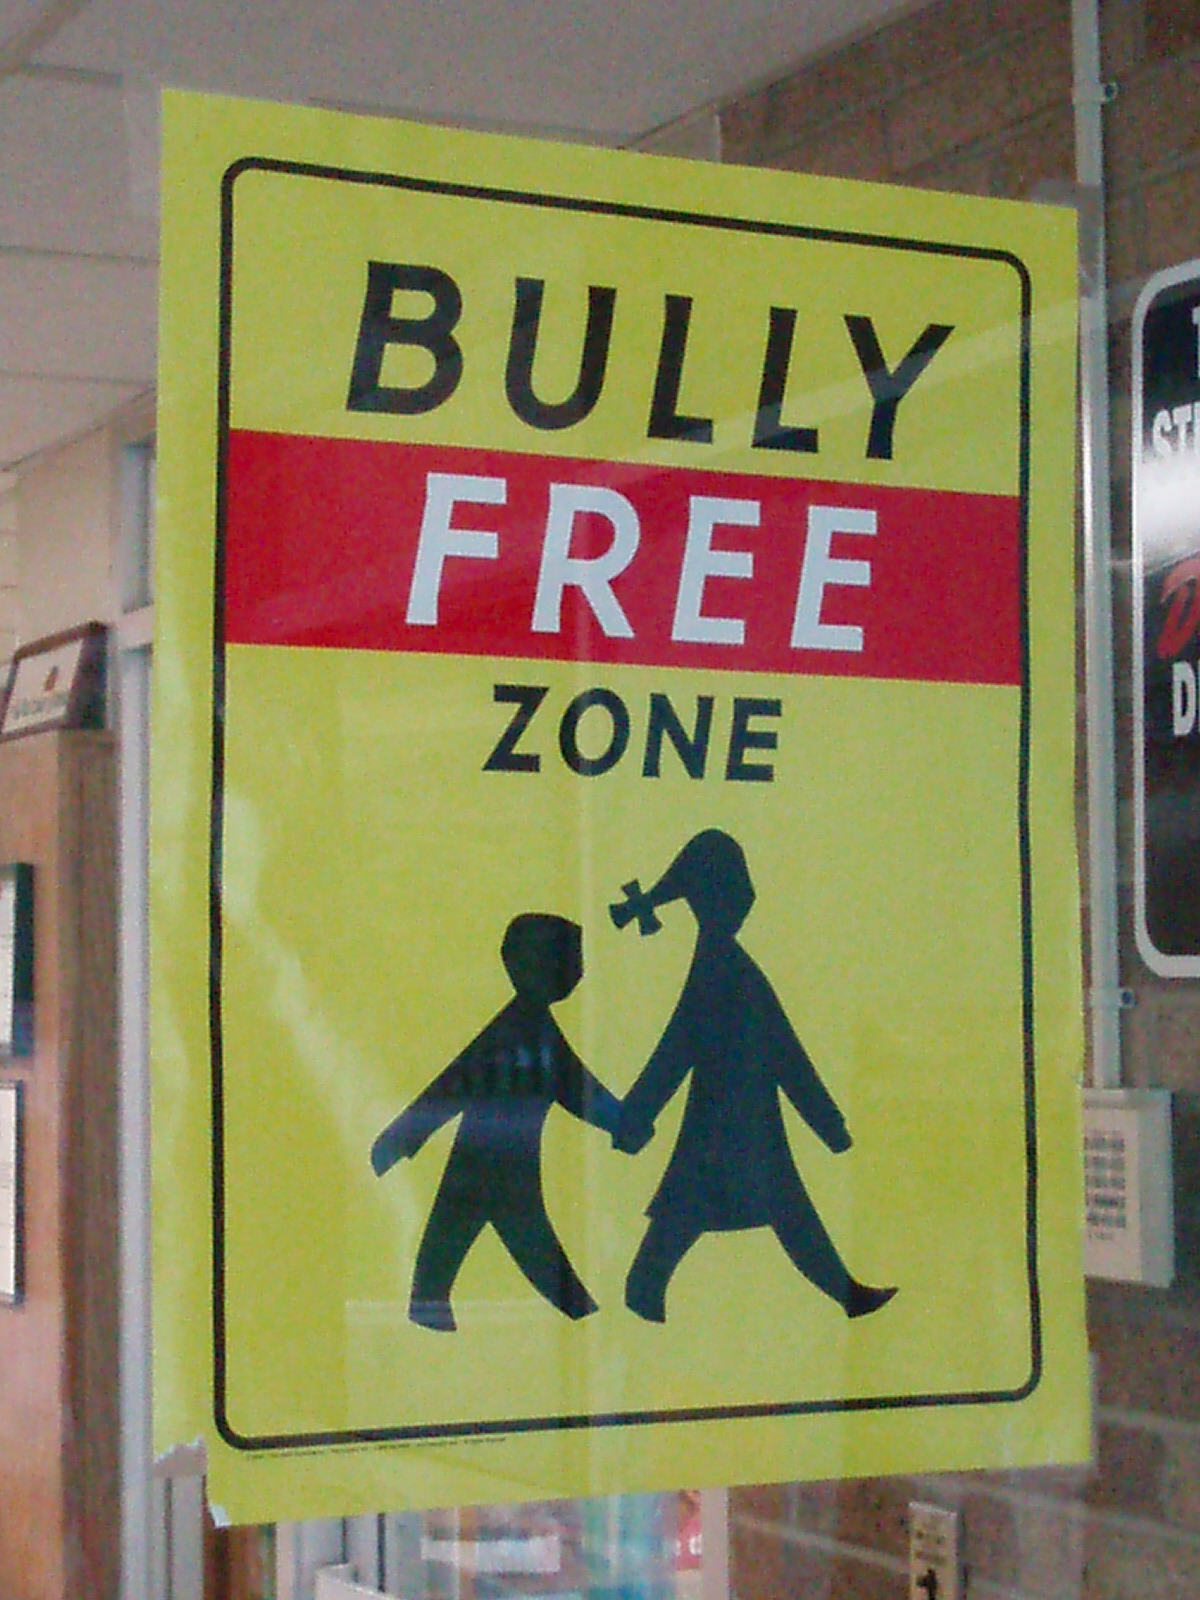 By Eddie~S (Bully Free Zone  Uploaded by Doktory) [CC-BY-2.0  (www.creativecommons.org/licenses/by/2.0)], via Wikimedia Commons